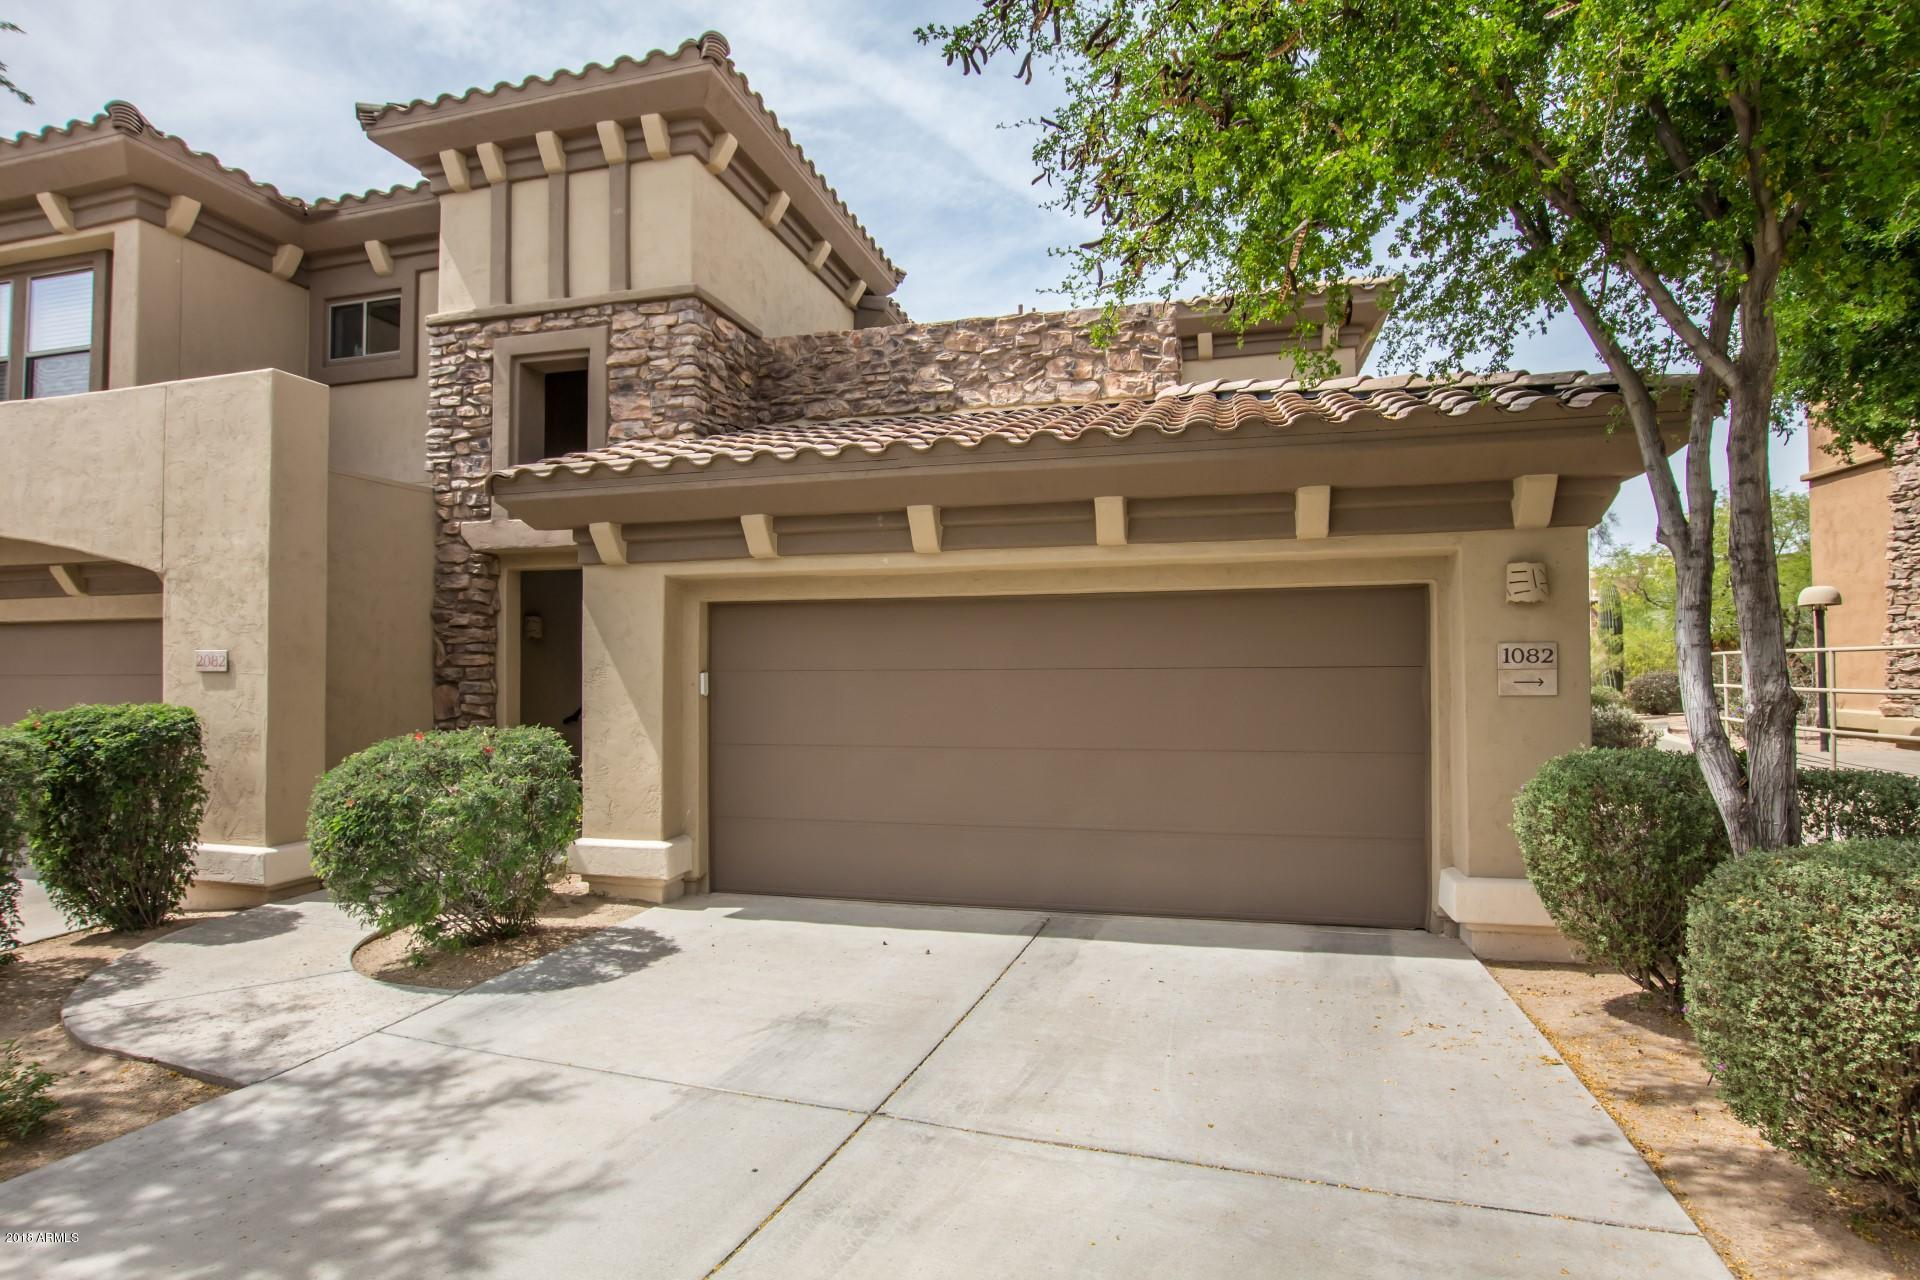 19700 N 76TH Street Unit 2082 Scottsdale, AZ 85255 - MLS #: 5851600